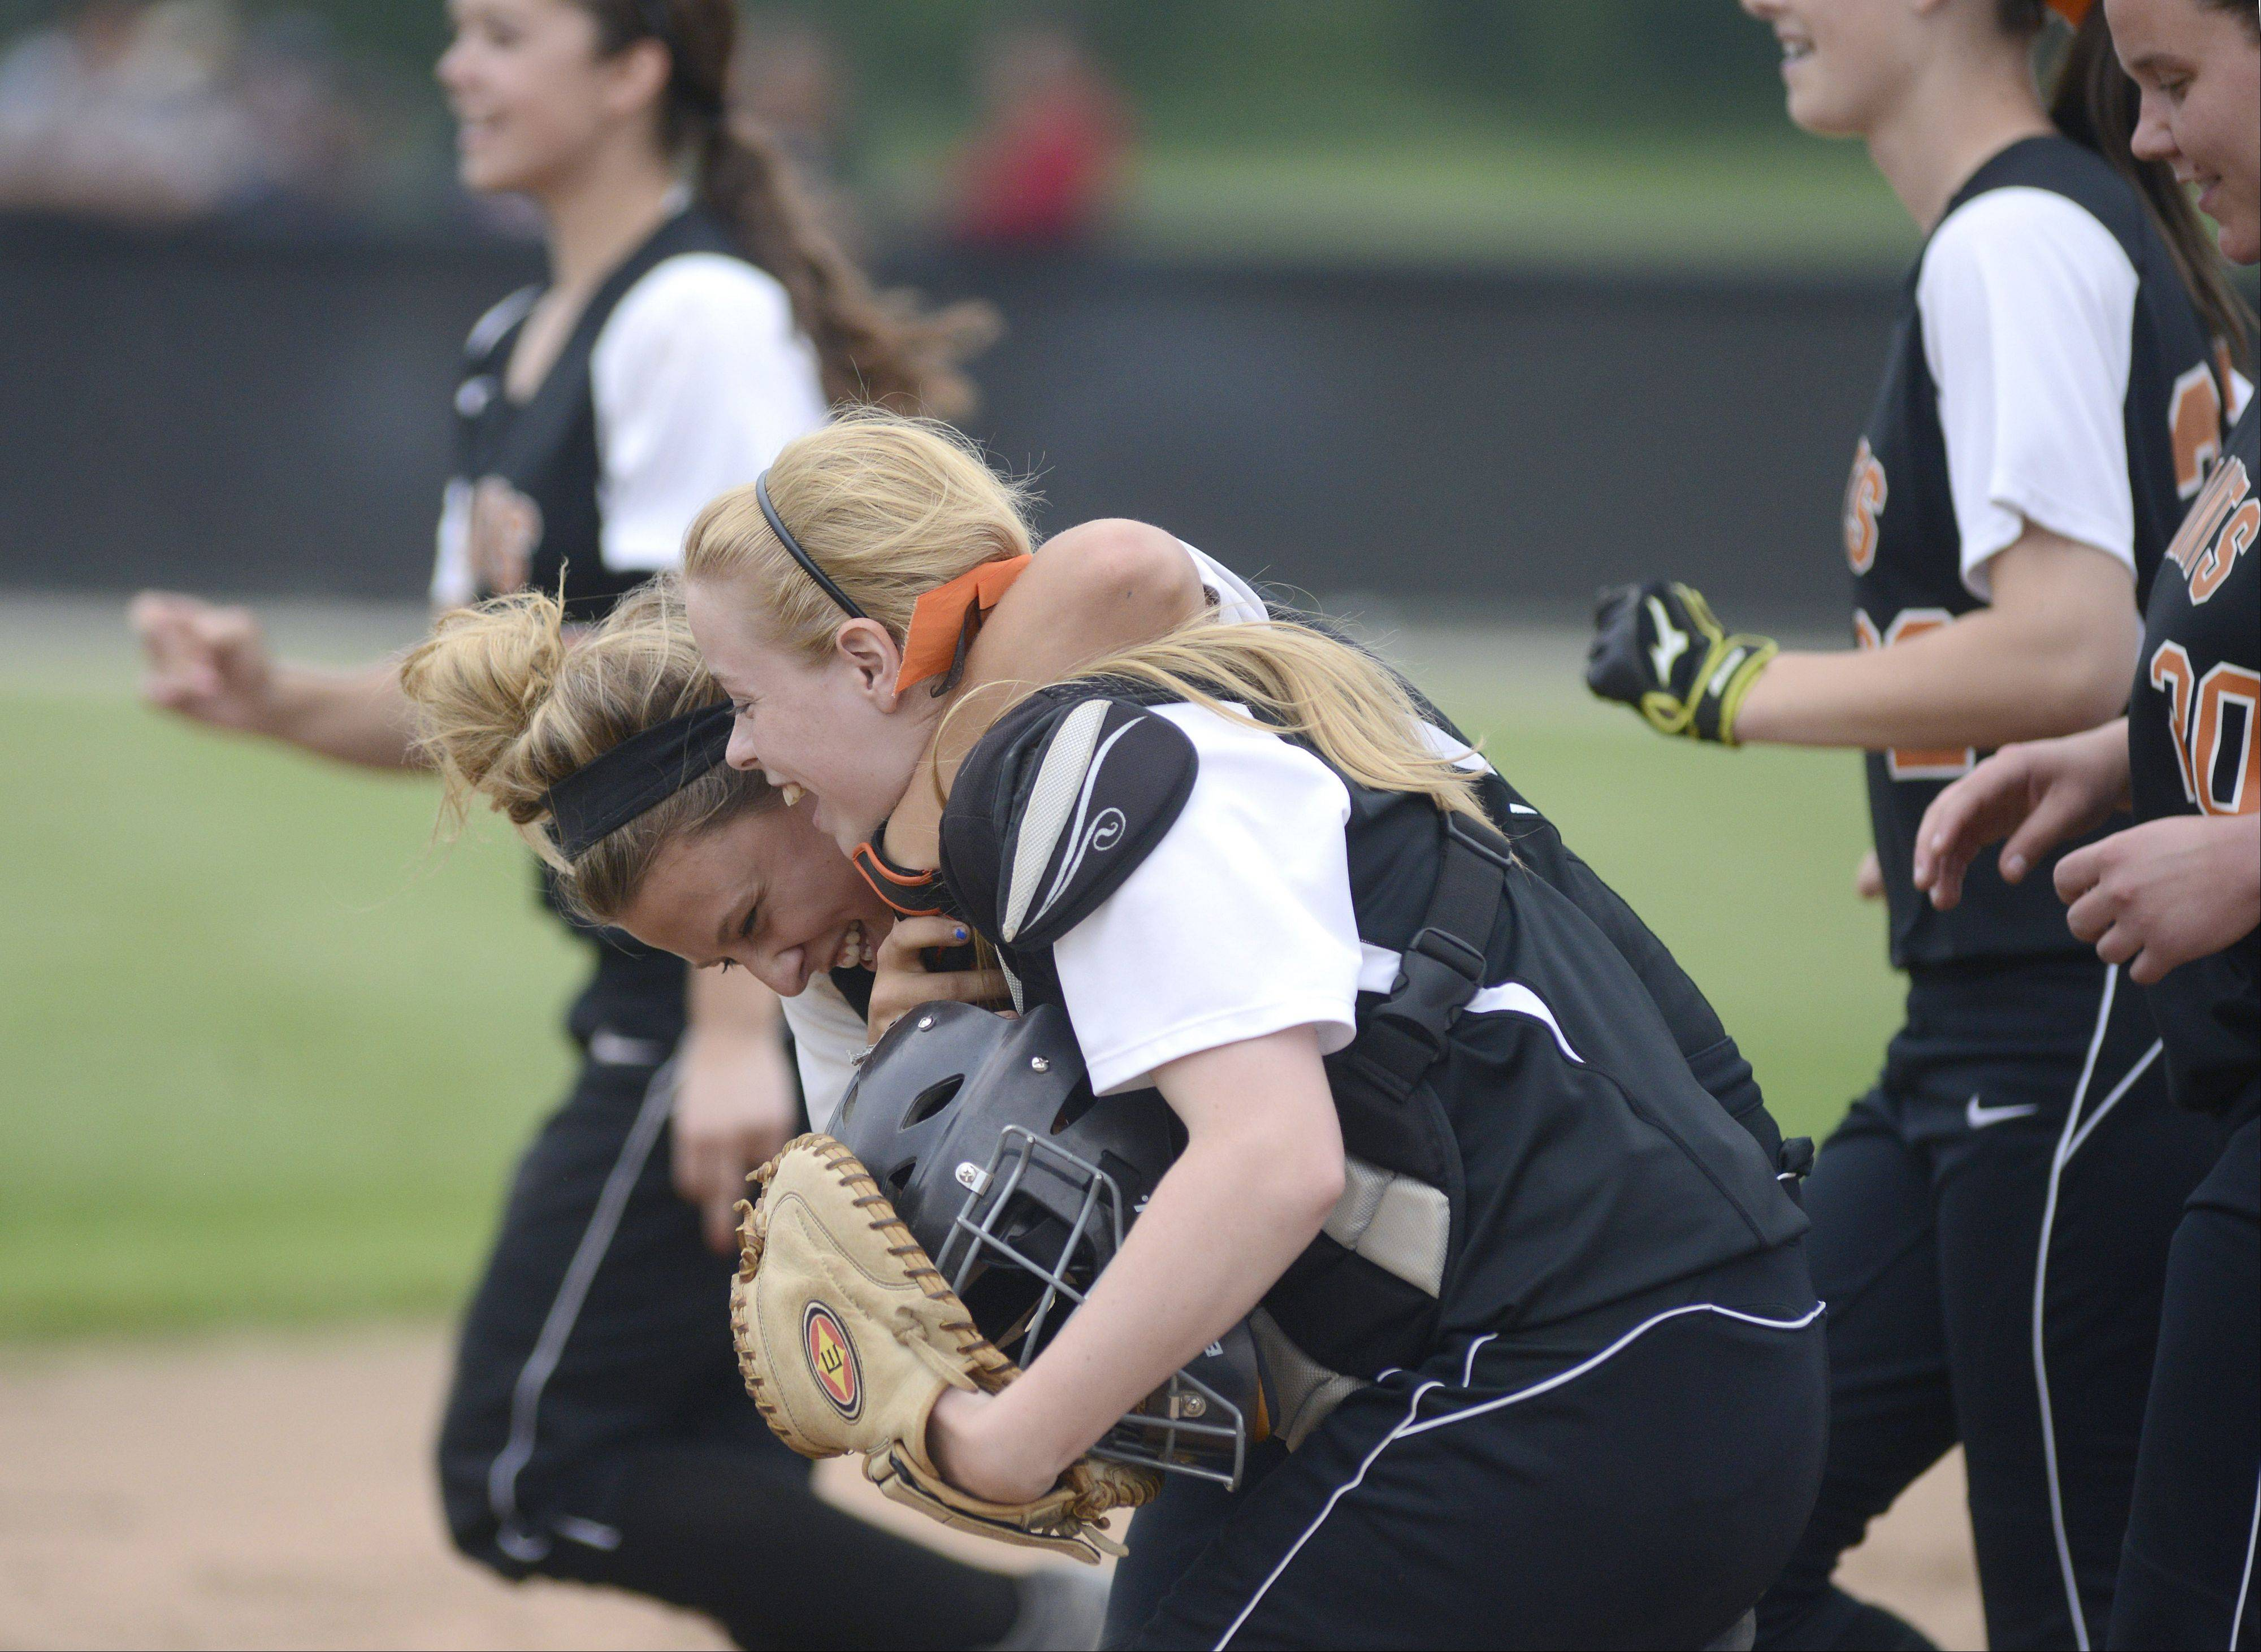 St. Charles East's Mackenzie Meadows wraps her arm around teammate and catcher Shelby Holtz after winning the Class 4A sectional vs. Bartlett on Tuesday.